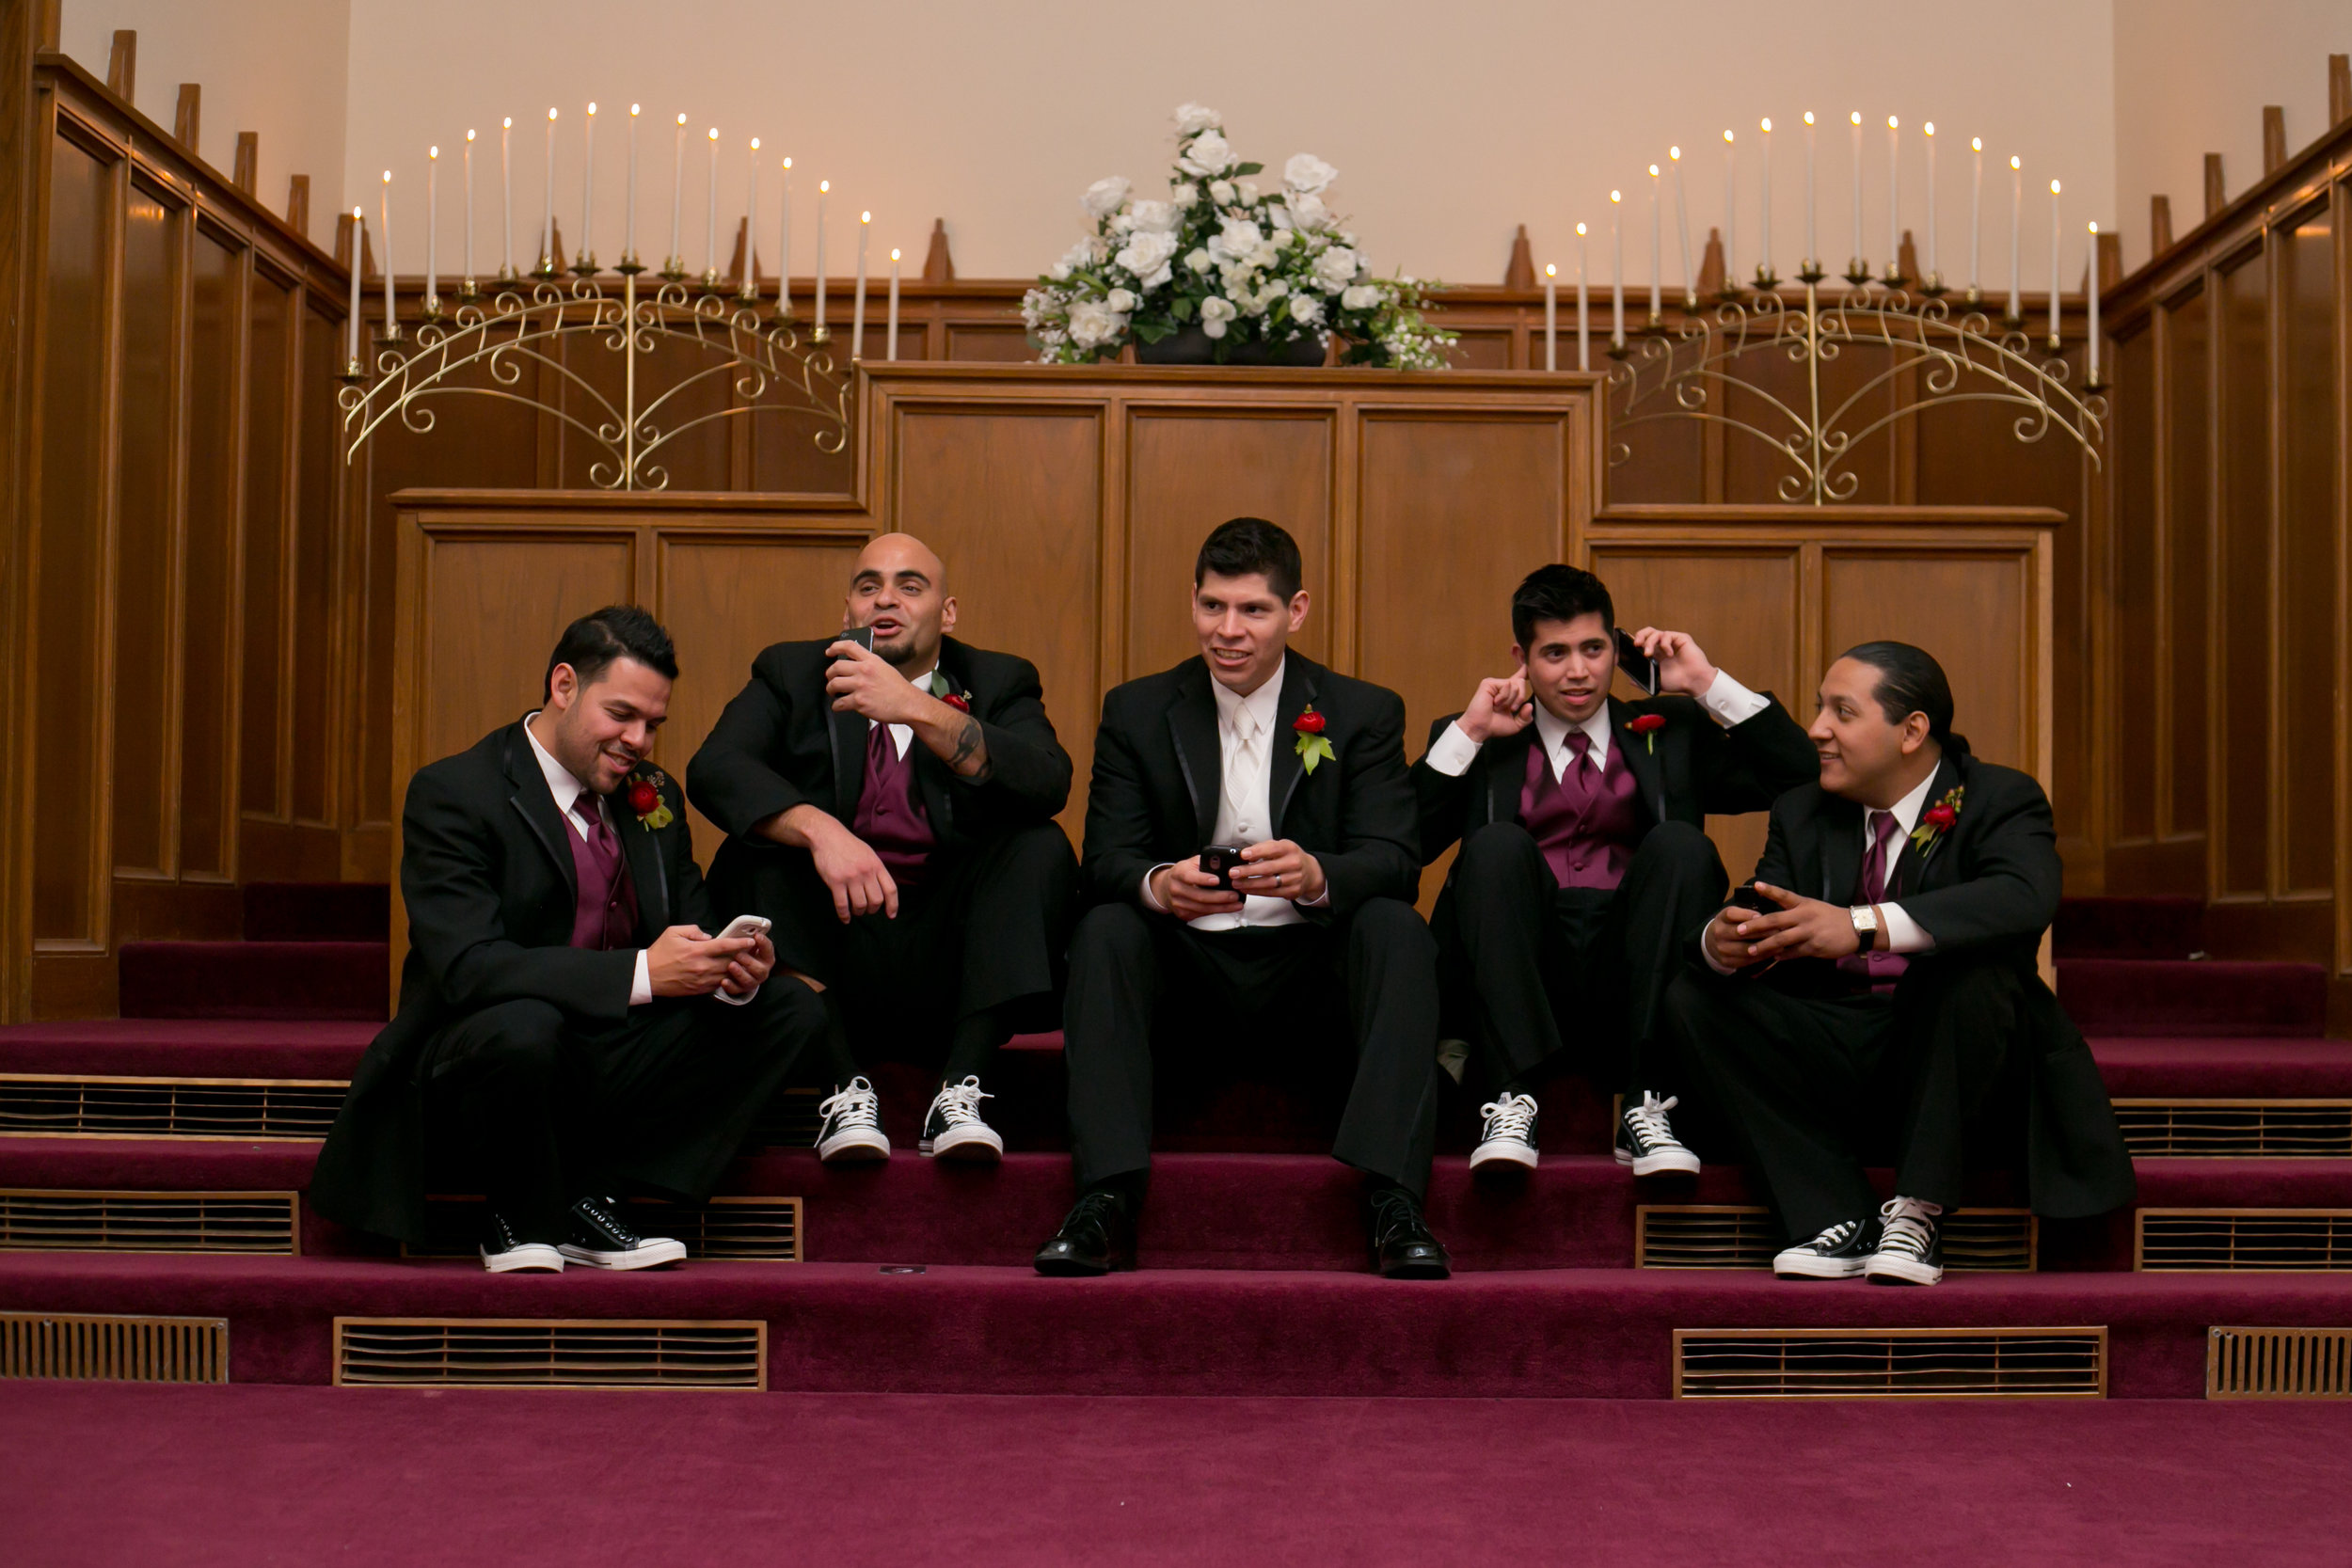 JMP2012-Gutierrez Wedding Ceremony (171).jpg